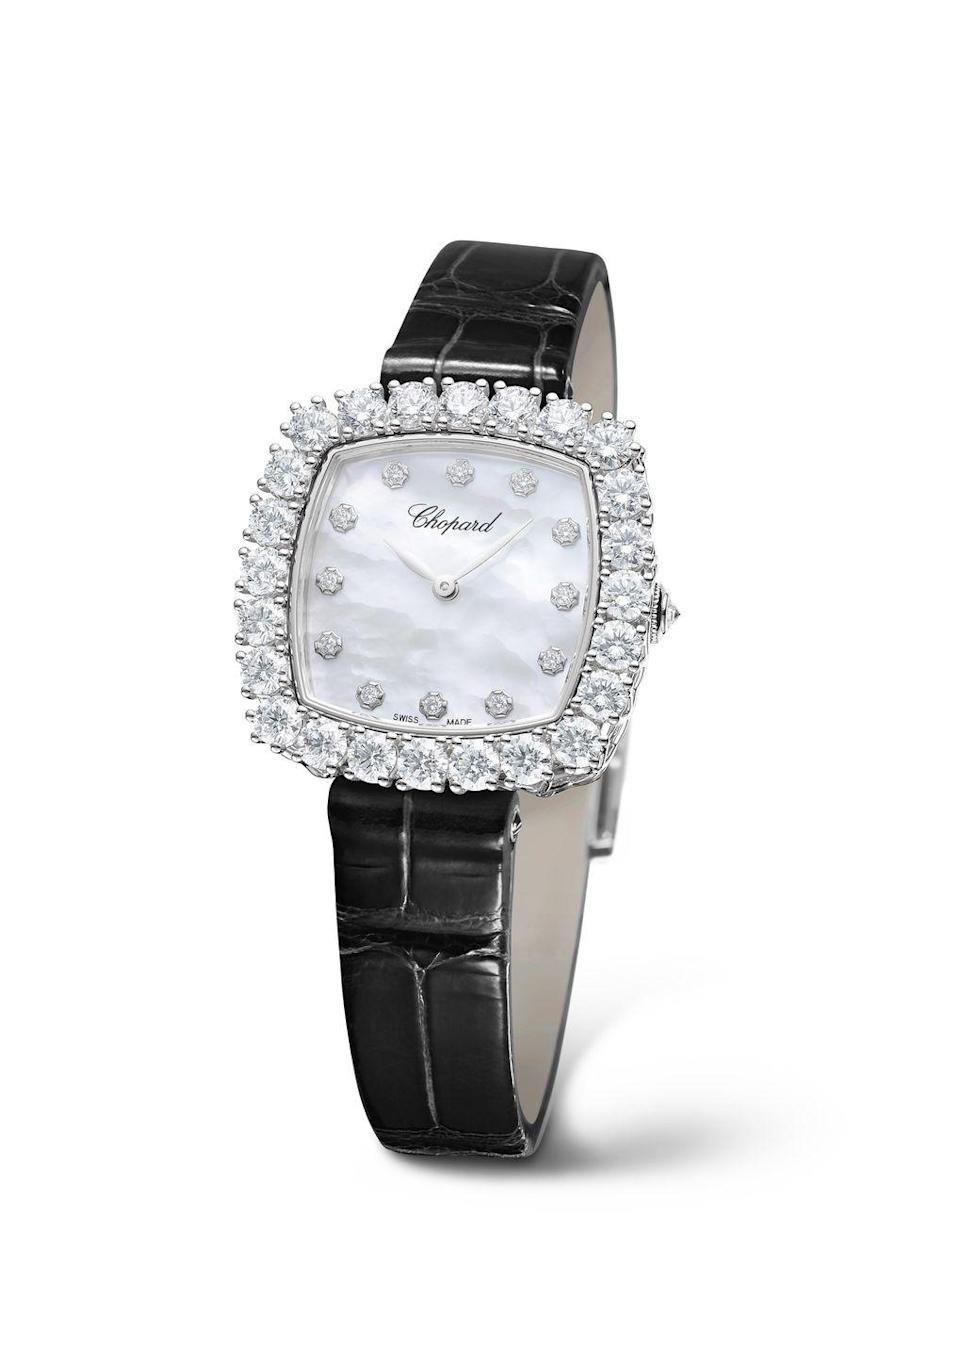 "<p><a class=""link rapid-noclick-resp"" href=""https://www.chopard.com/uk/watches/watches-for-her/diamond-watches"" rel=""nofollow noopener"" target=""_blank"" data-ylk=""slk:SHOP NOW"">SHOP NOW</a></p><p>Looking for something altogether dressier? Chopard's L'Heure du Diamant watches are the ultimate in bejwelled bracelet watches, and its latest cushion-shaped edition is no exception. </p><p>Its ethically sourced white gold case has a shimmering mother-of-pearl dial and is framed with white diamonds. </p><p>L'Heure du Diamant watch, £48,100, <a href=""https://www.chopard.com/uk/watches/watches-for-her/diamond-watches"" rel=""nofollow noopener"" target=""_blank"" data-ylk=""slk:Chopard"" class=""link rapid-noclick-resp"">Chopard</a></p>"